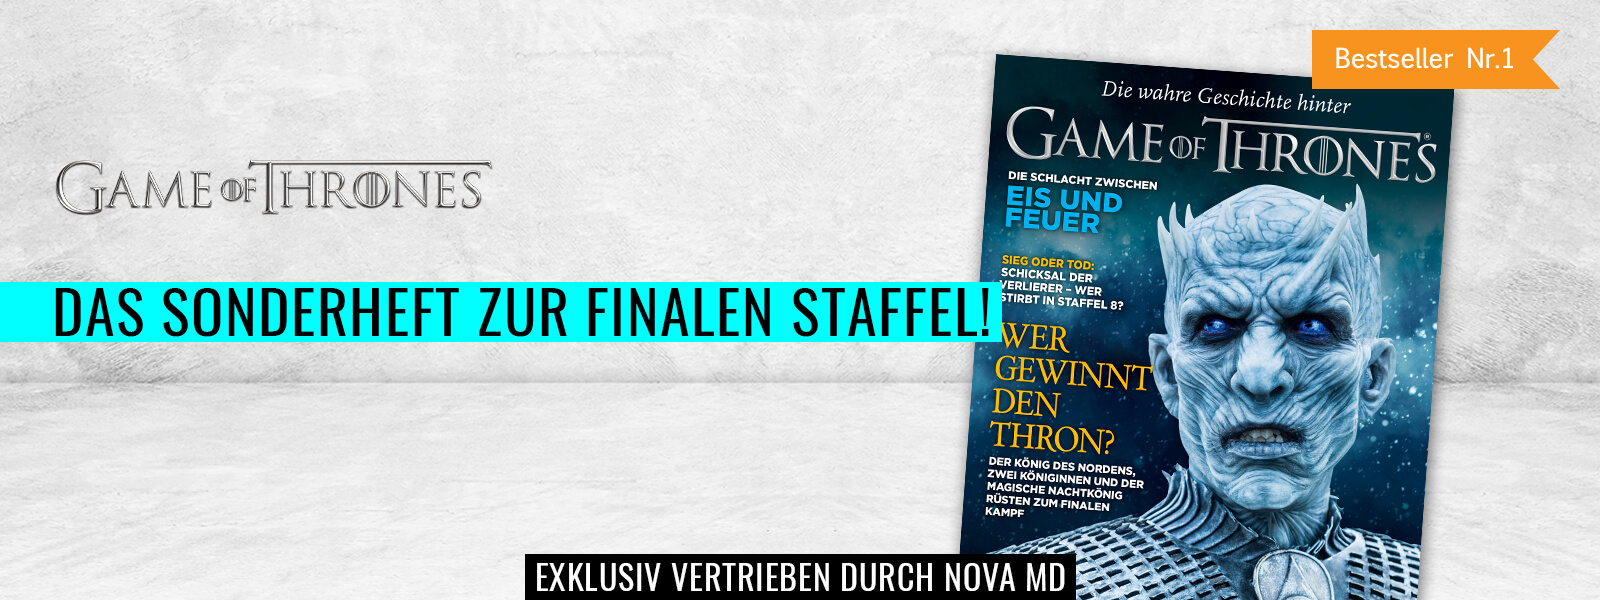 Game of Thrones Magazin, das Special zur finalen Staffel, Bestseller bei Amazon